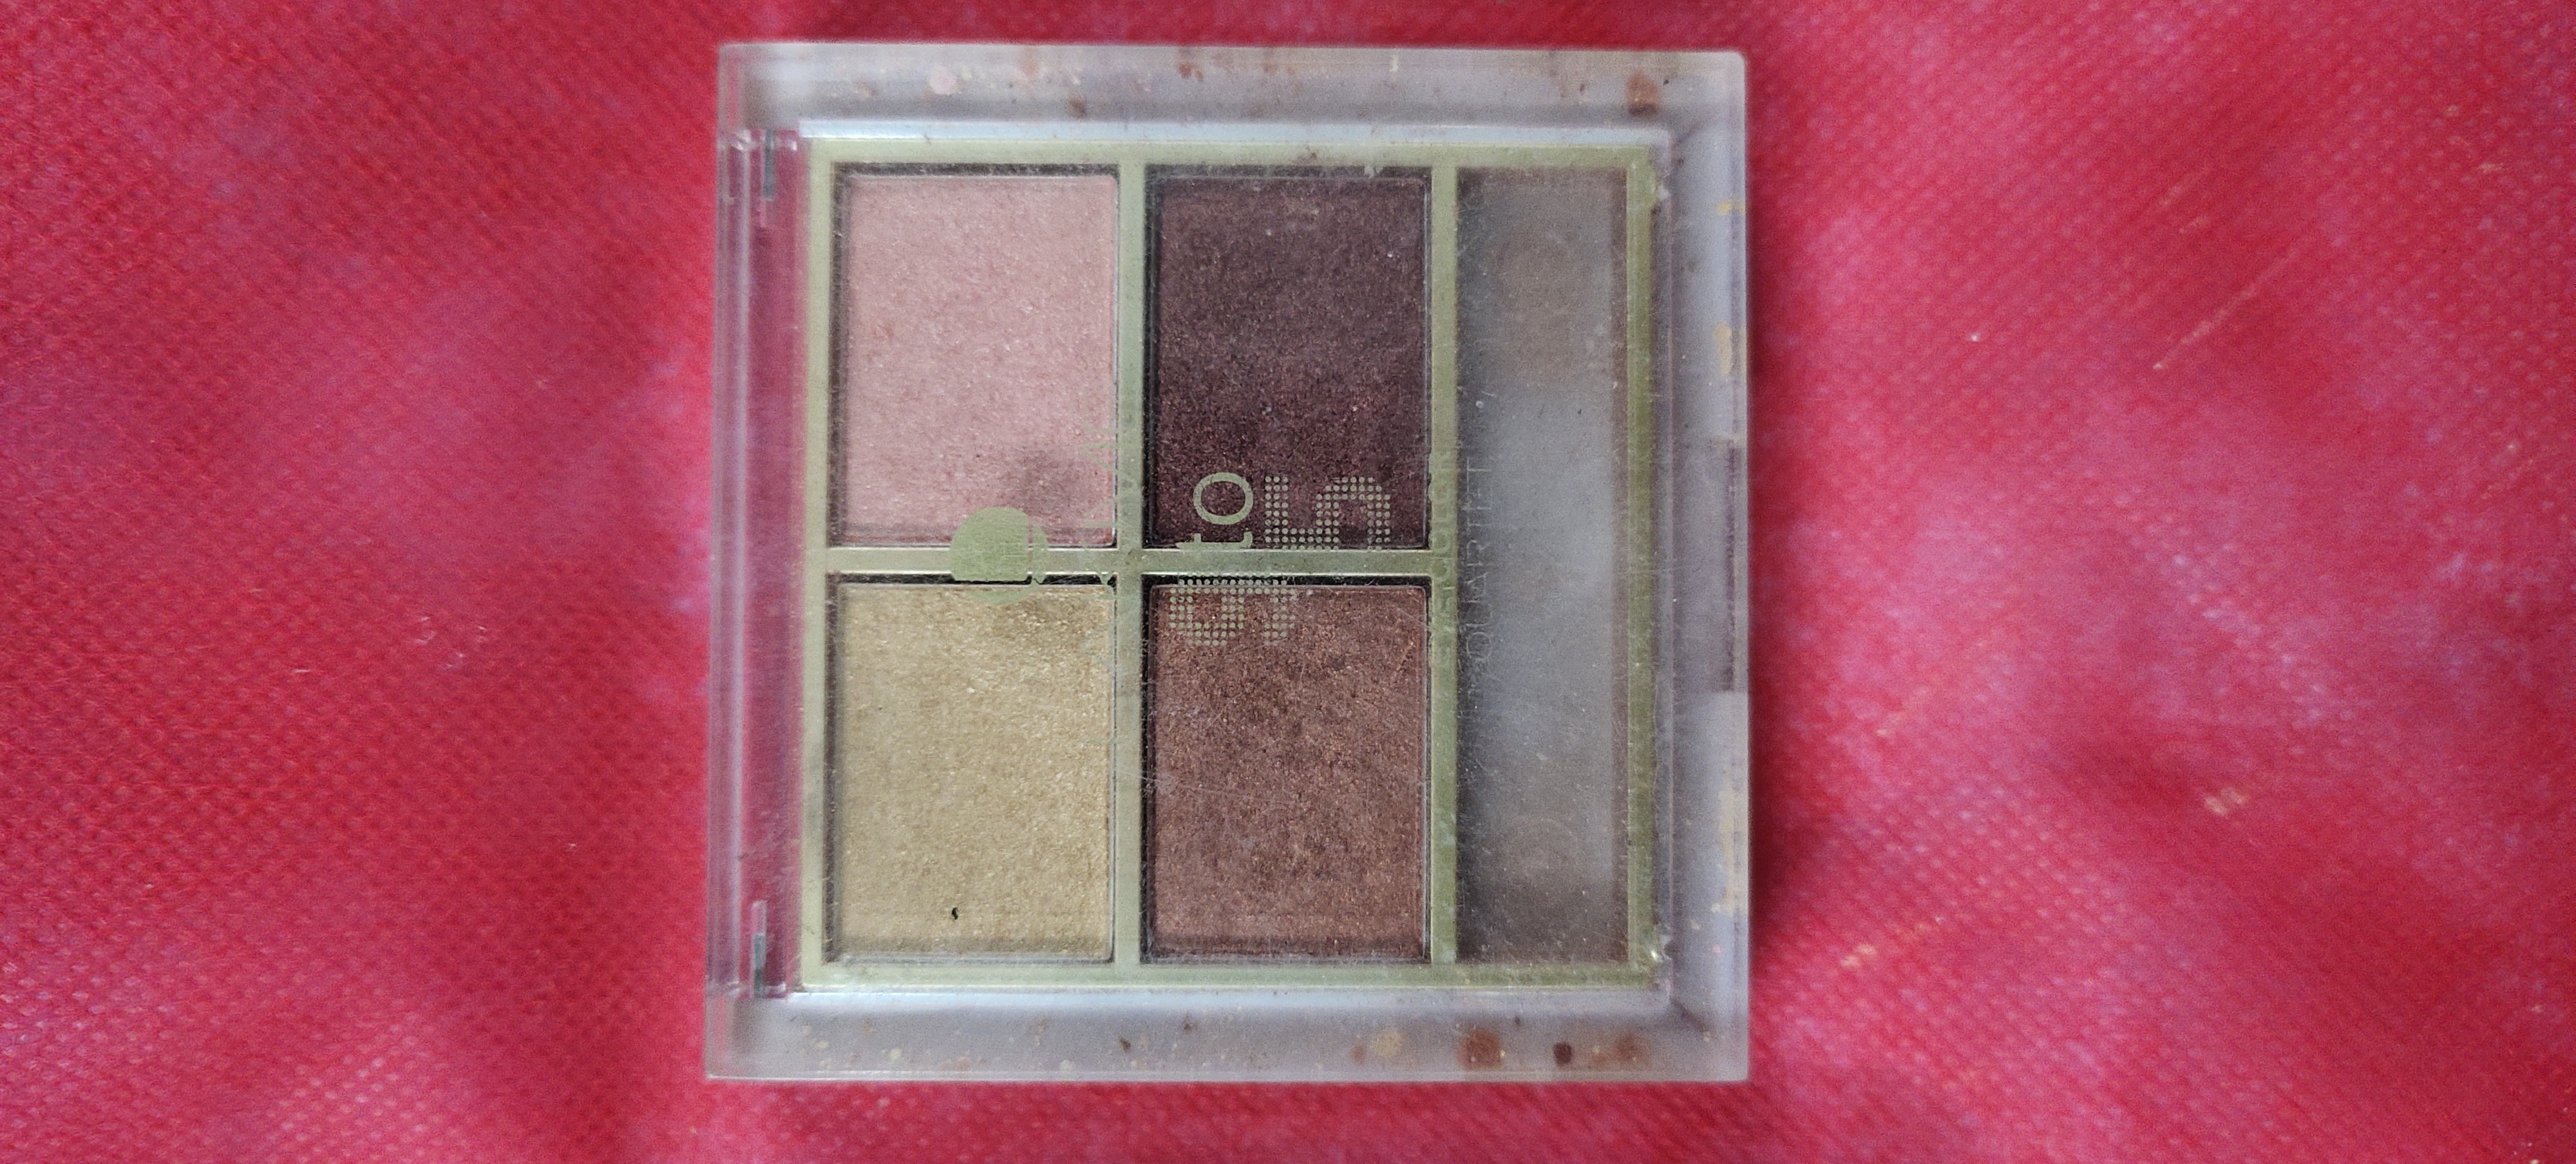 Lakme 9 To 5 Eye Quartet Eyeshadow pic 1-Lakme quartet eyeshadow-By s_a_n_z_0